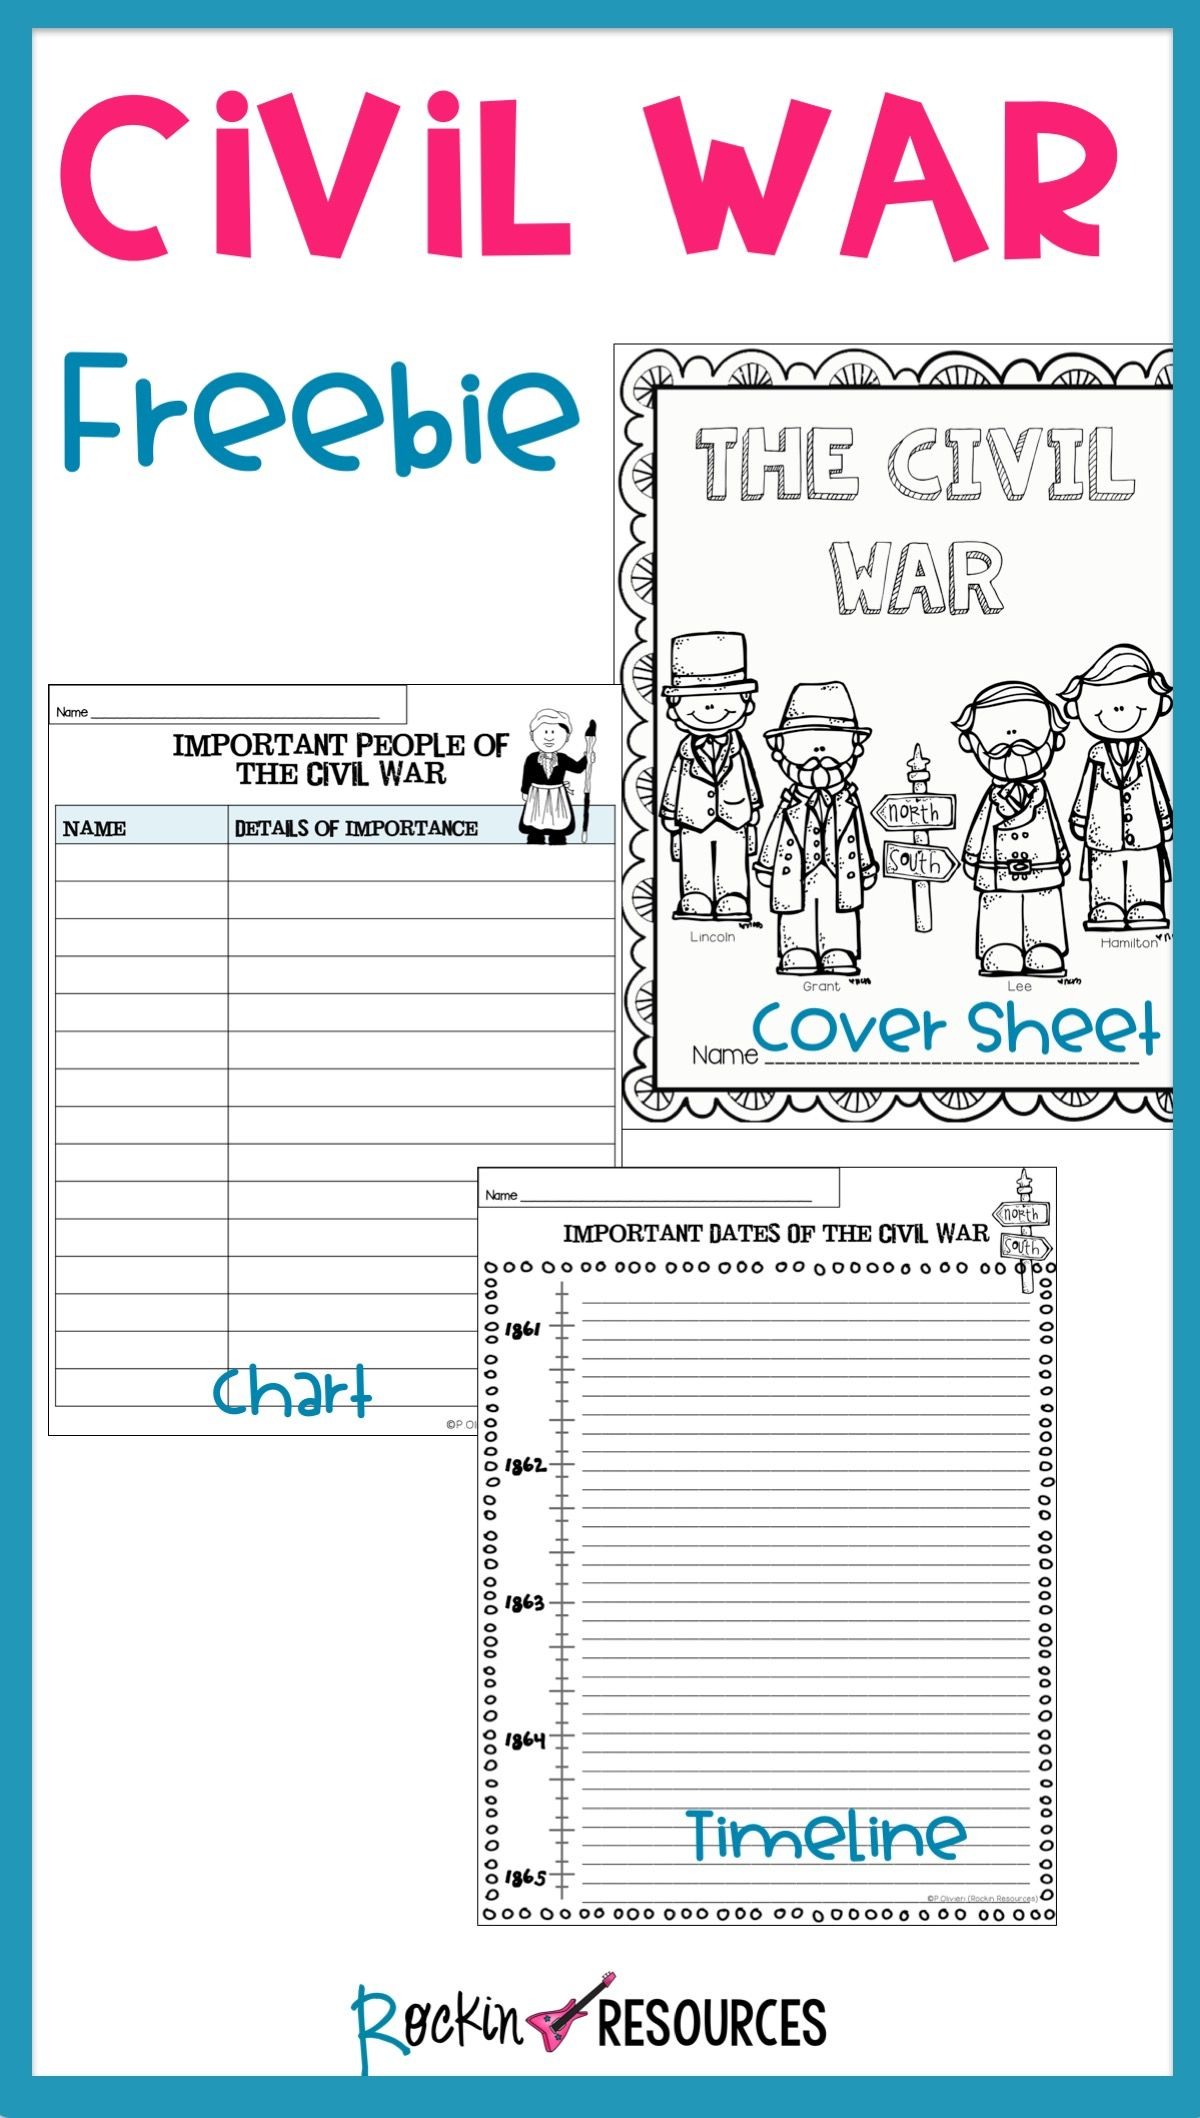 Civil War Timeline Cover Page And Chart Free Civil War Timeline Civil War Activities Civil War